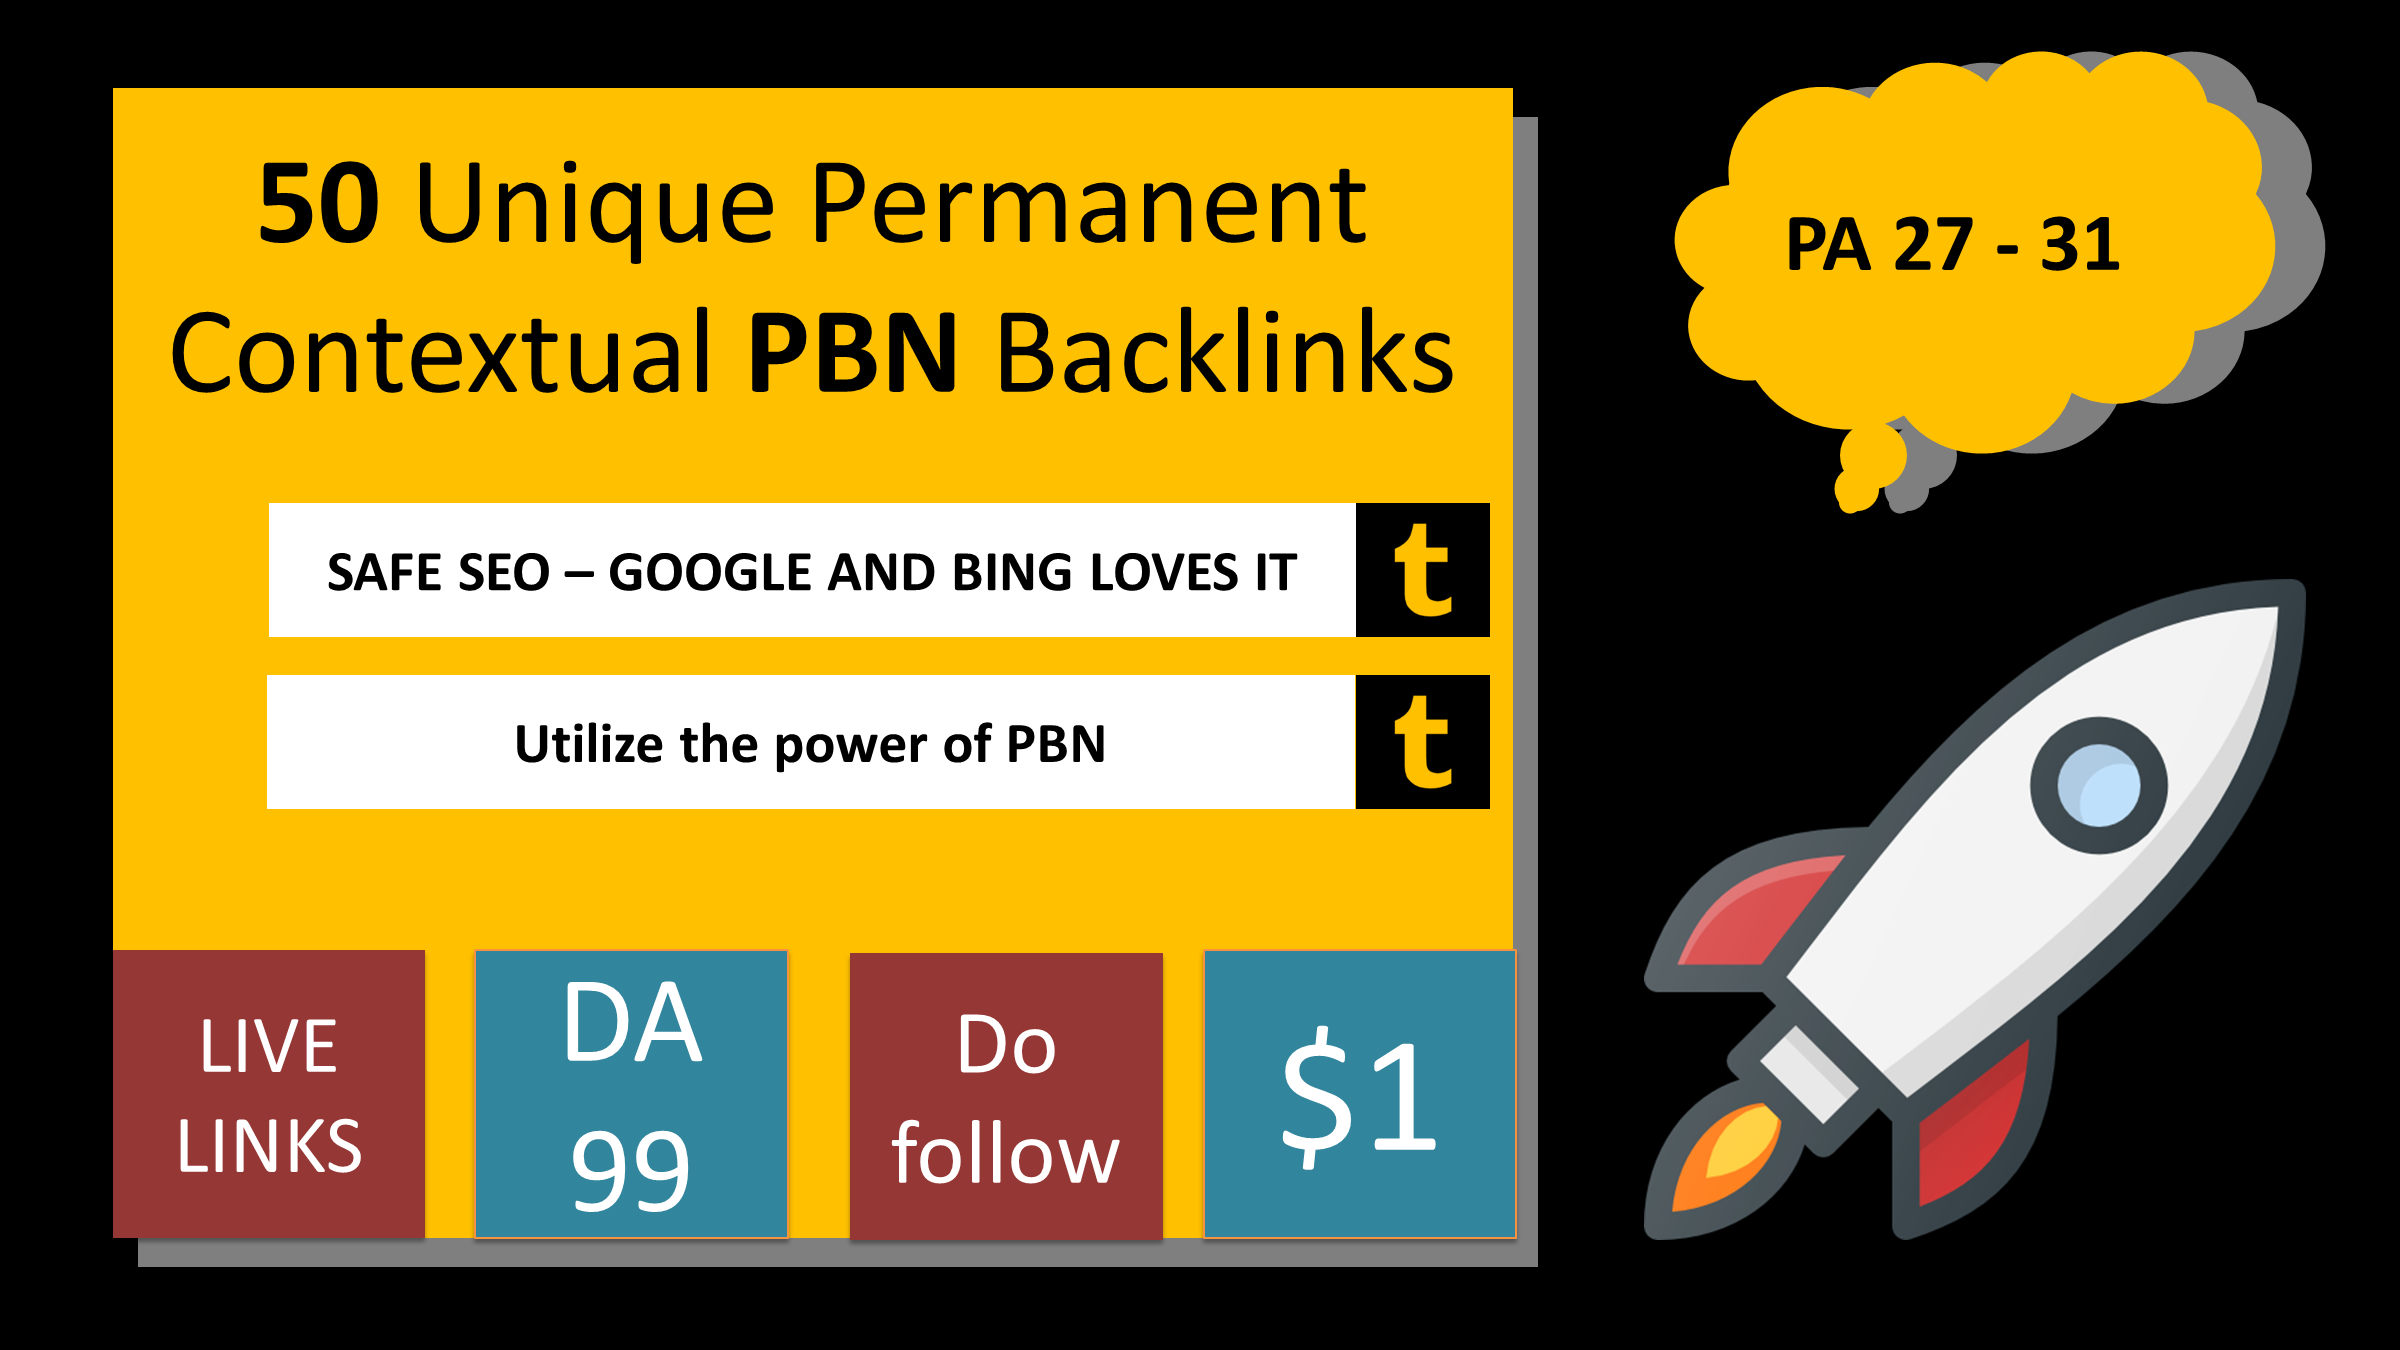 Built 50 Unique Permanent Contextual Backlinks on Tumblr Page authority 27 to 31